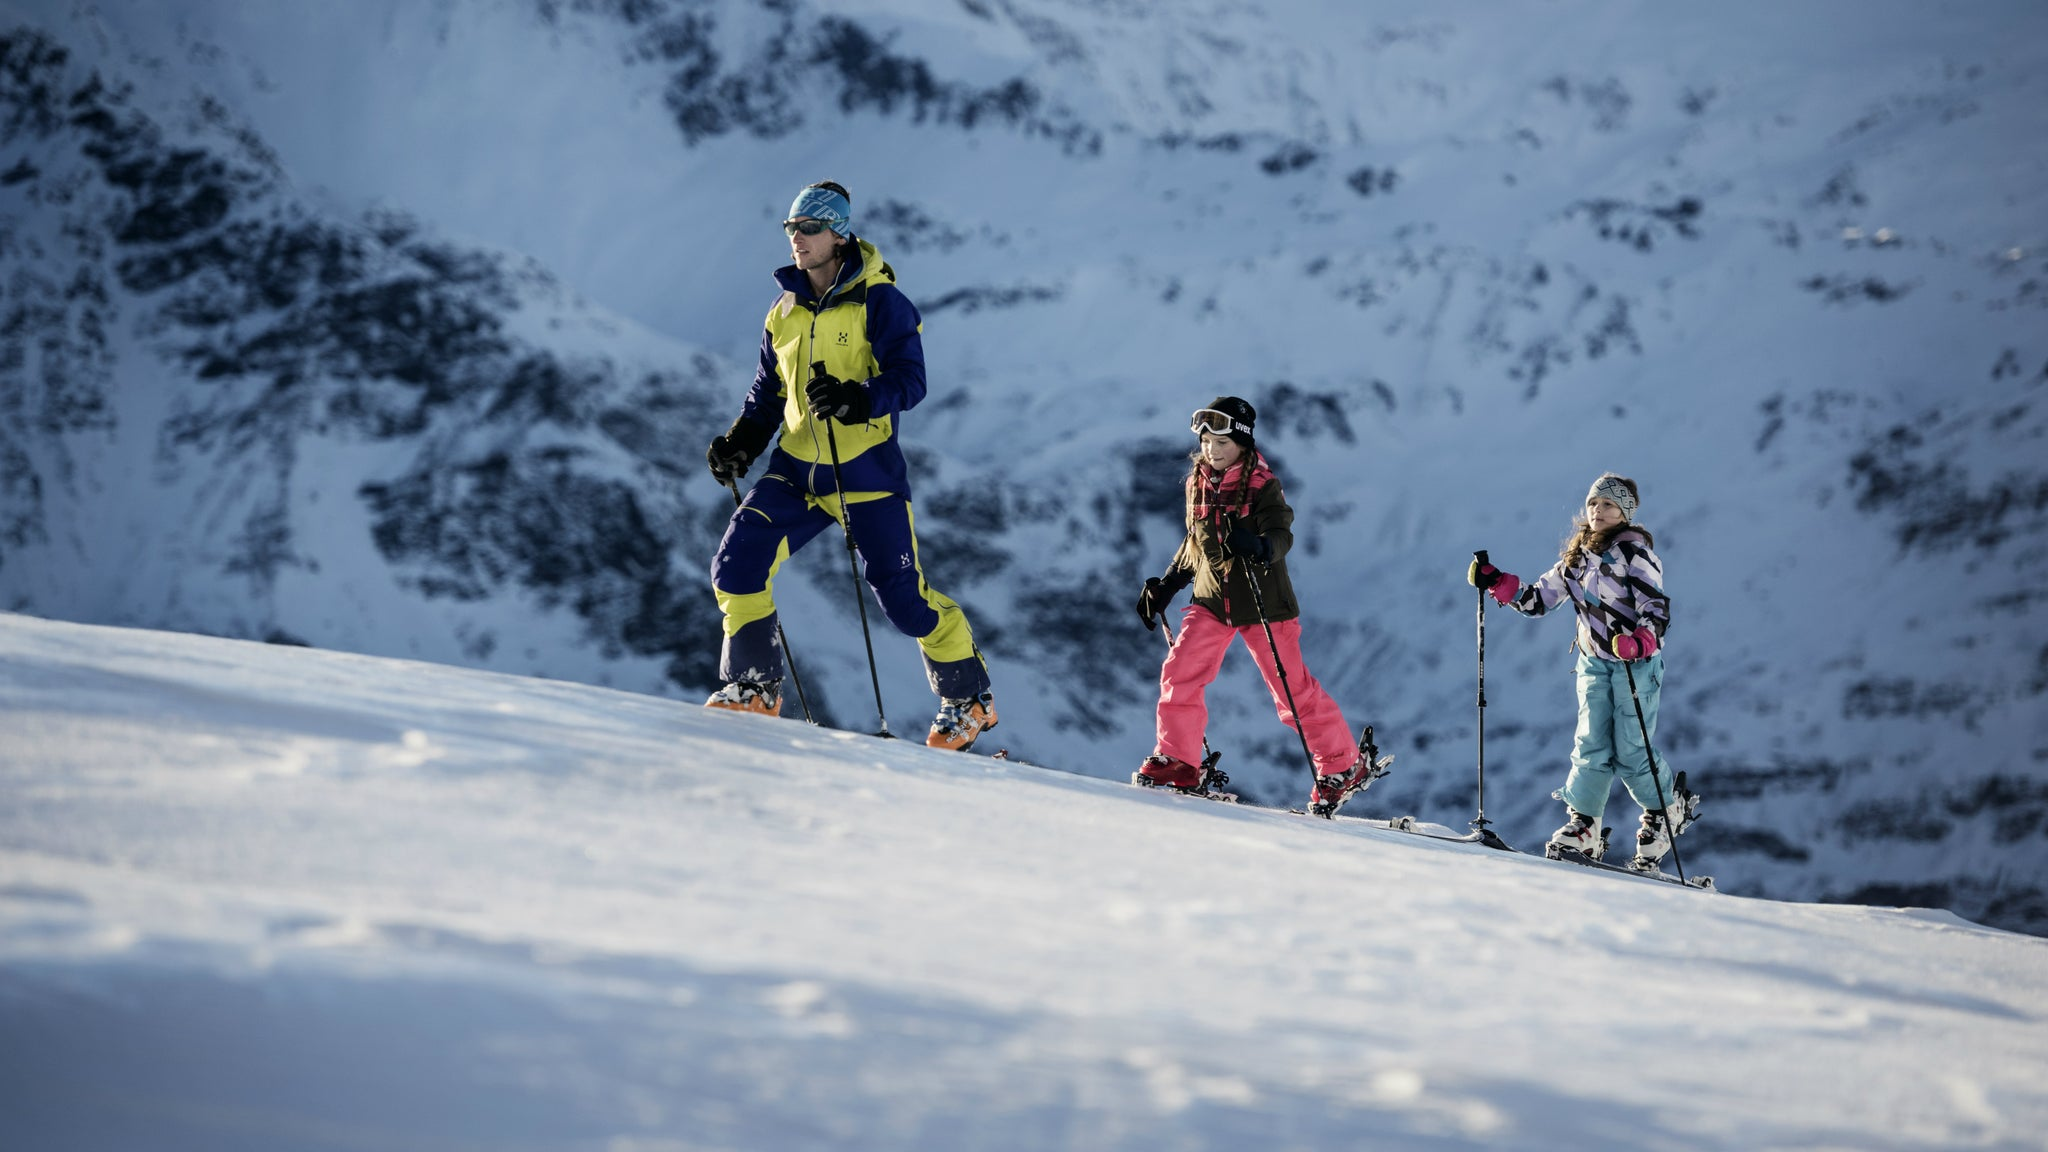 Kids ski touring on the Hagan Sky Force Junior alpine touring ski.